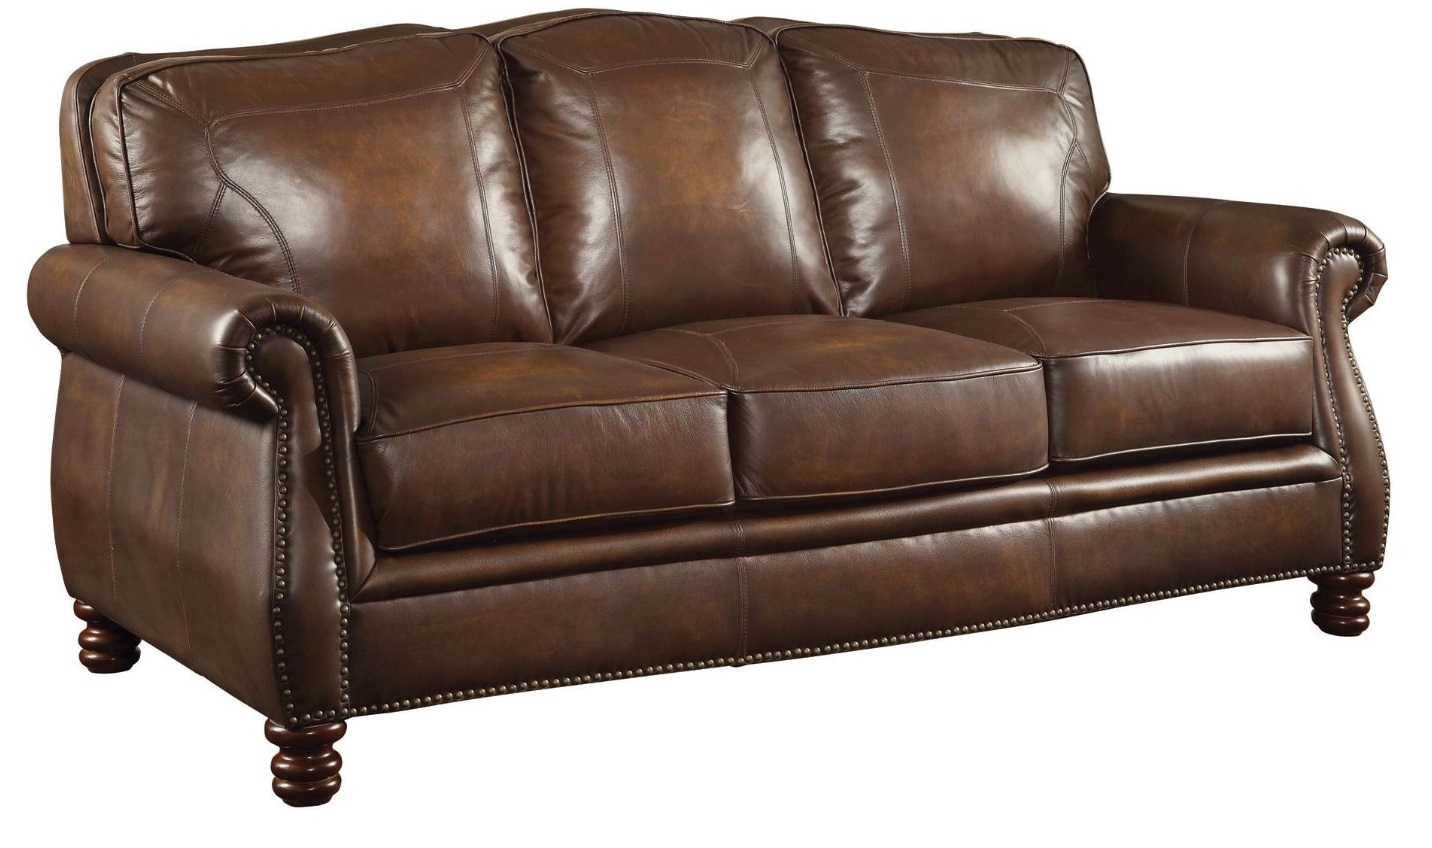 Brown Leather Chair Coaster Furniture Montbrook Brown Leather Sofa 503981